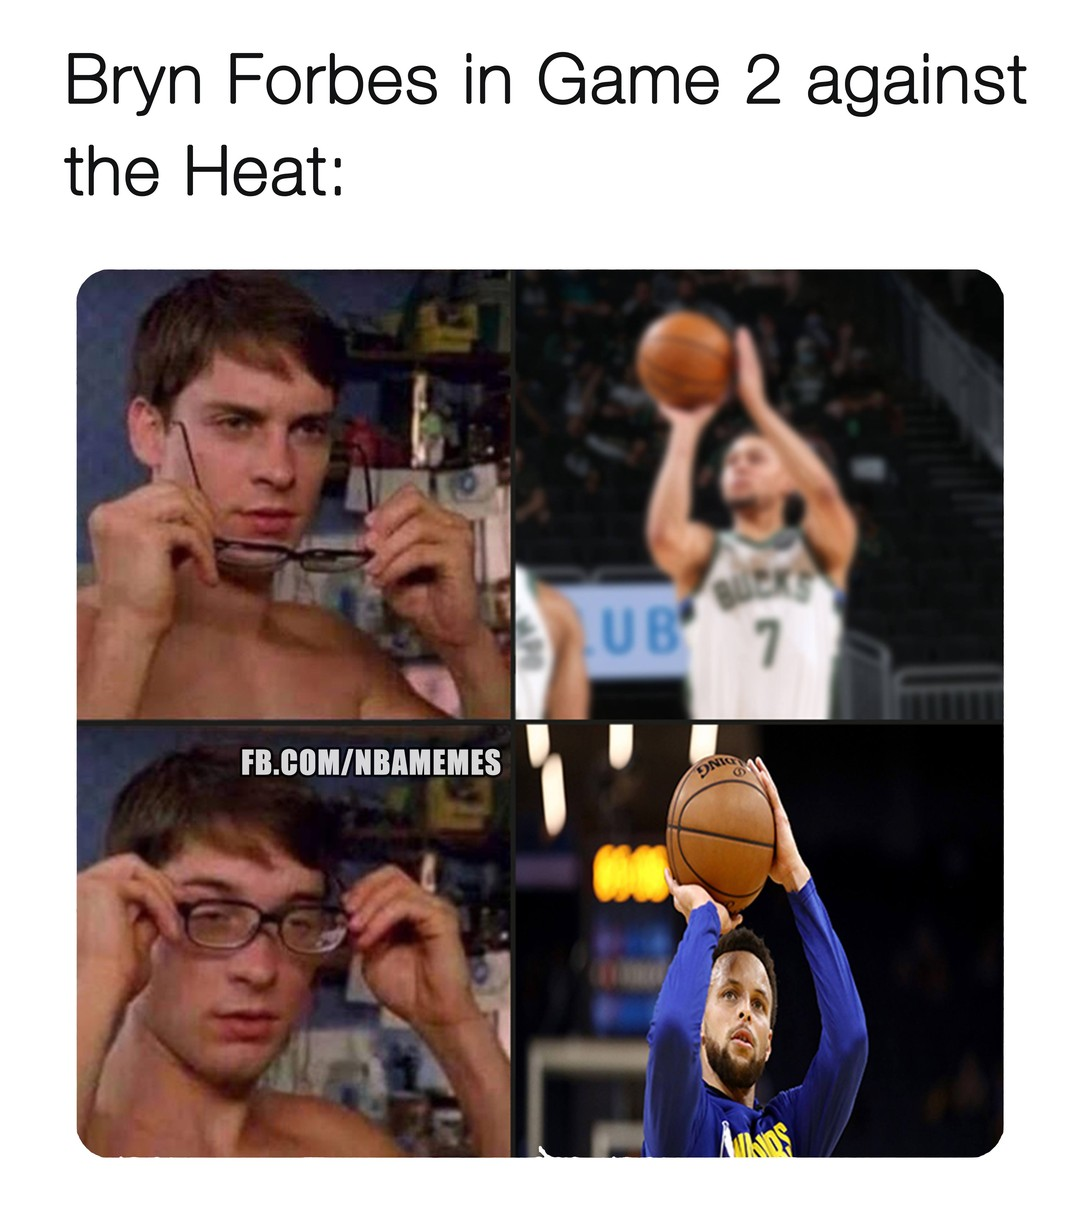 He scored 22 points and shot 6-9 from deep